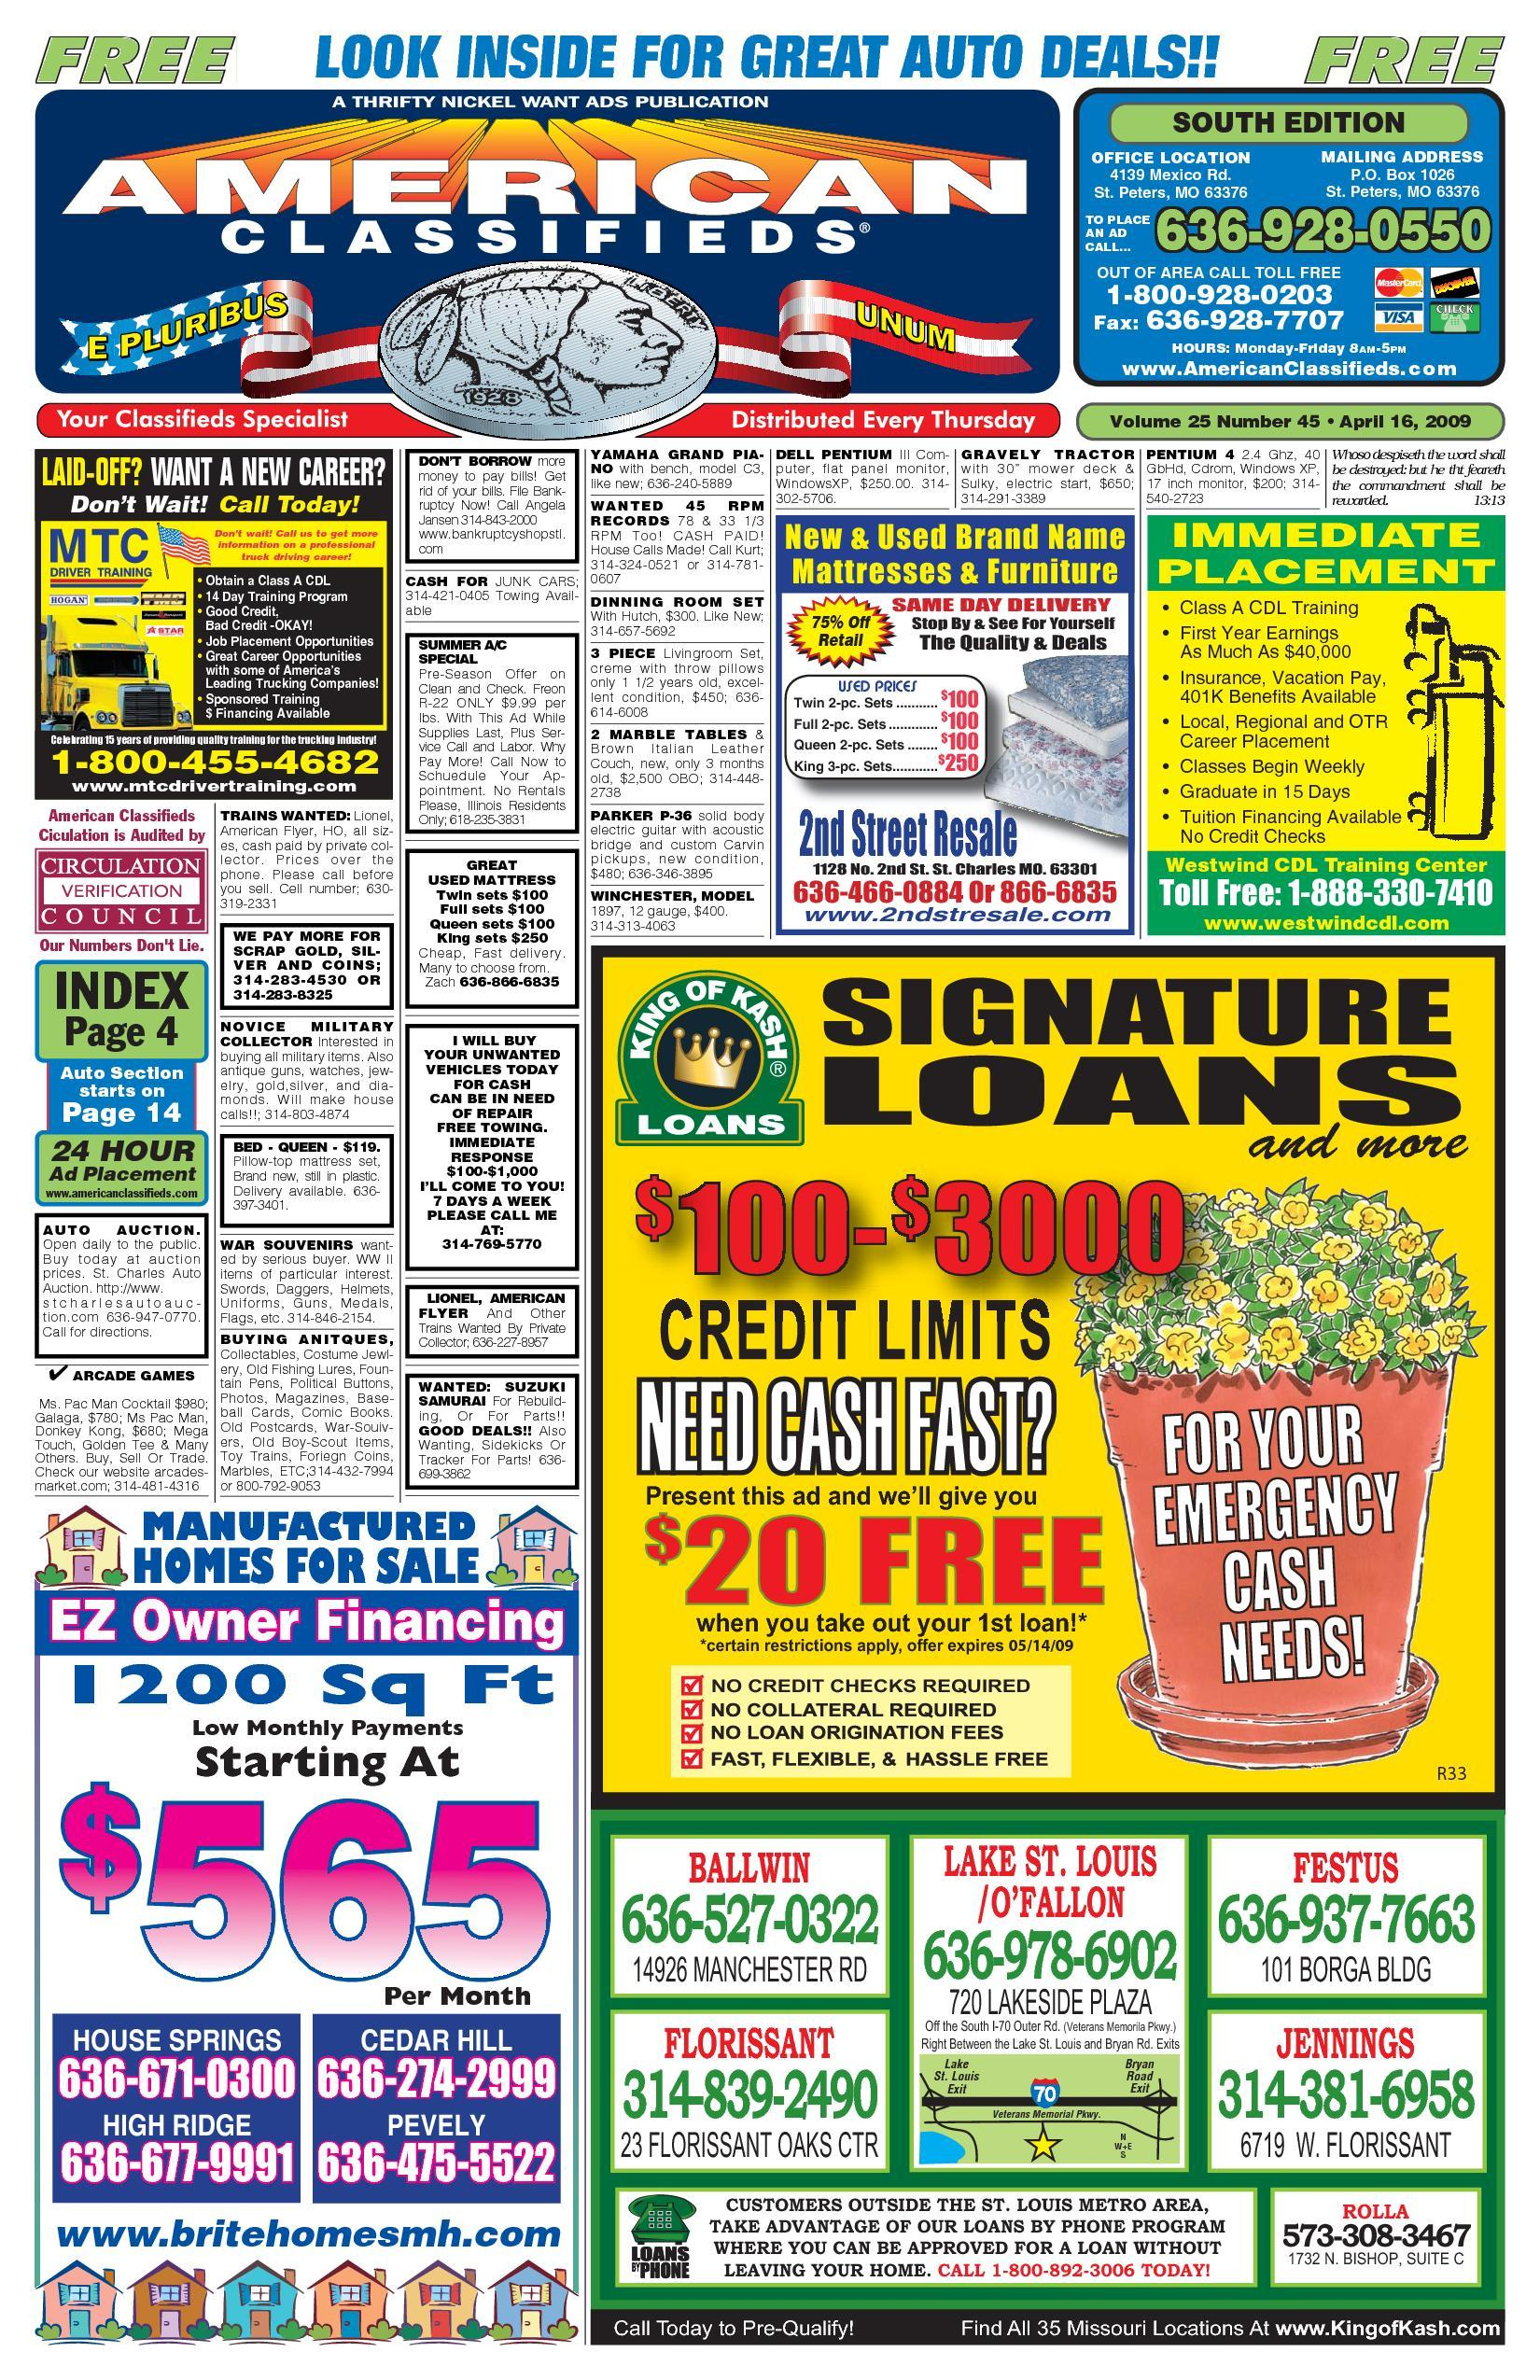 American Classifieds - St. Louis - 04